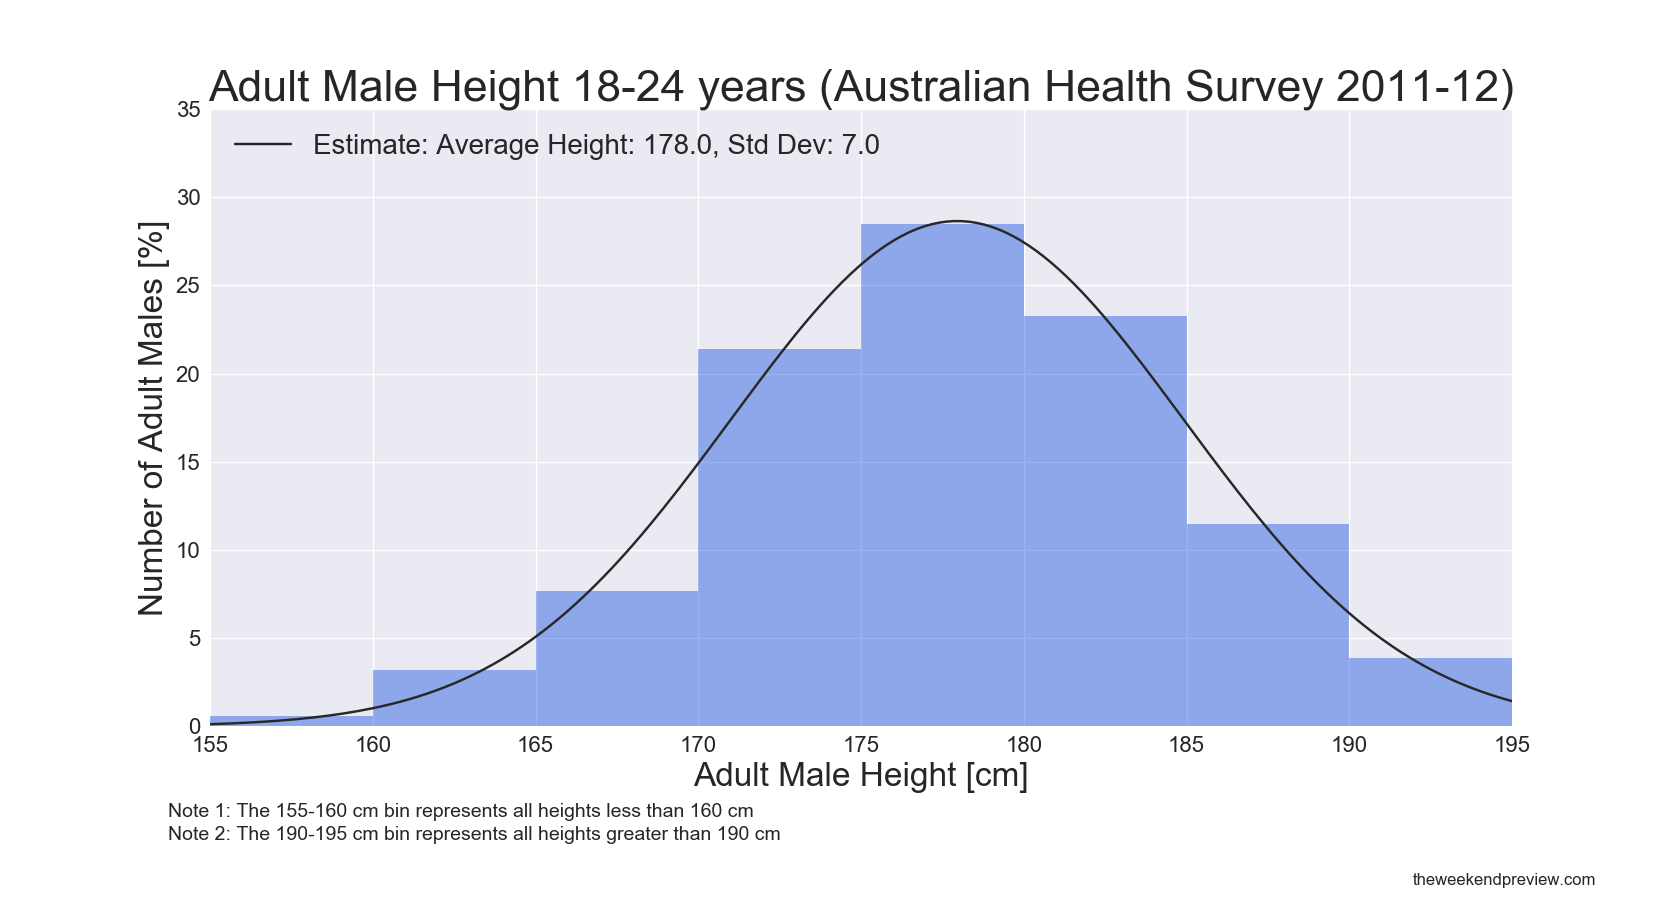 Figure-1: Australian Adult Male Height 18-24 years